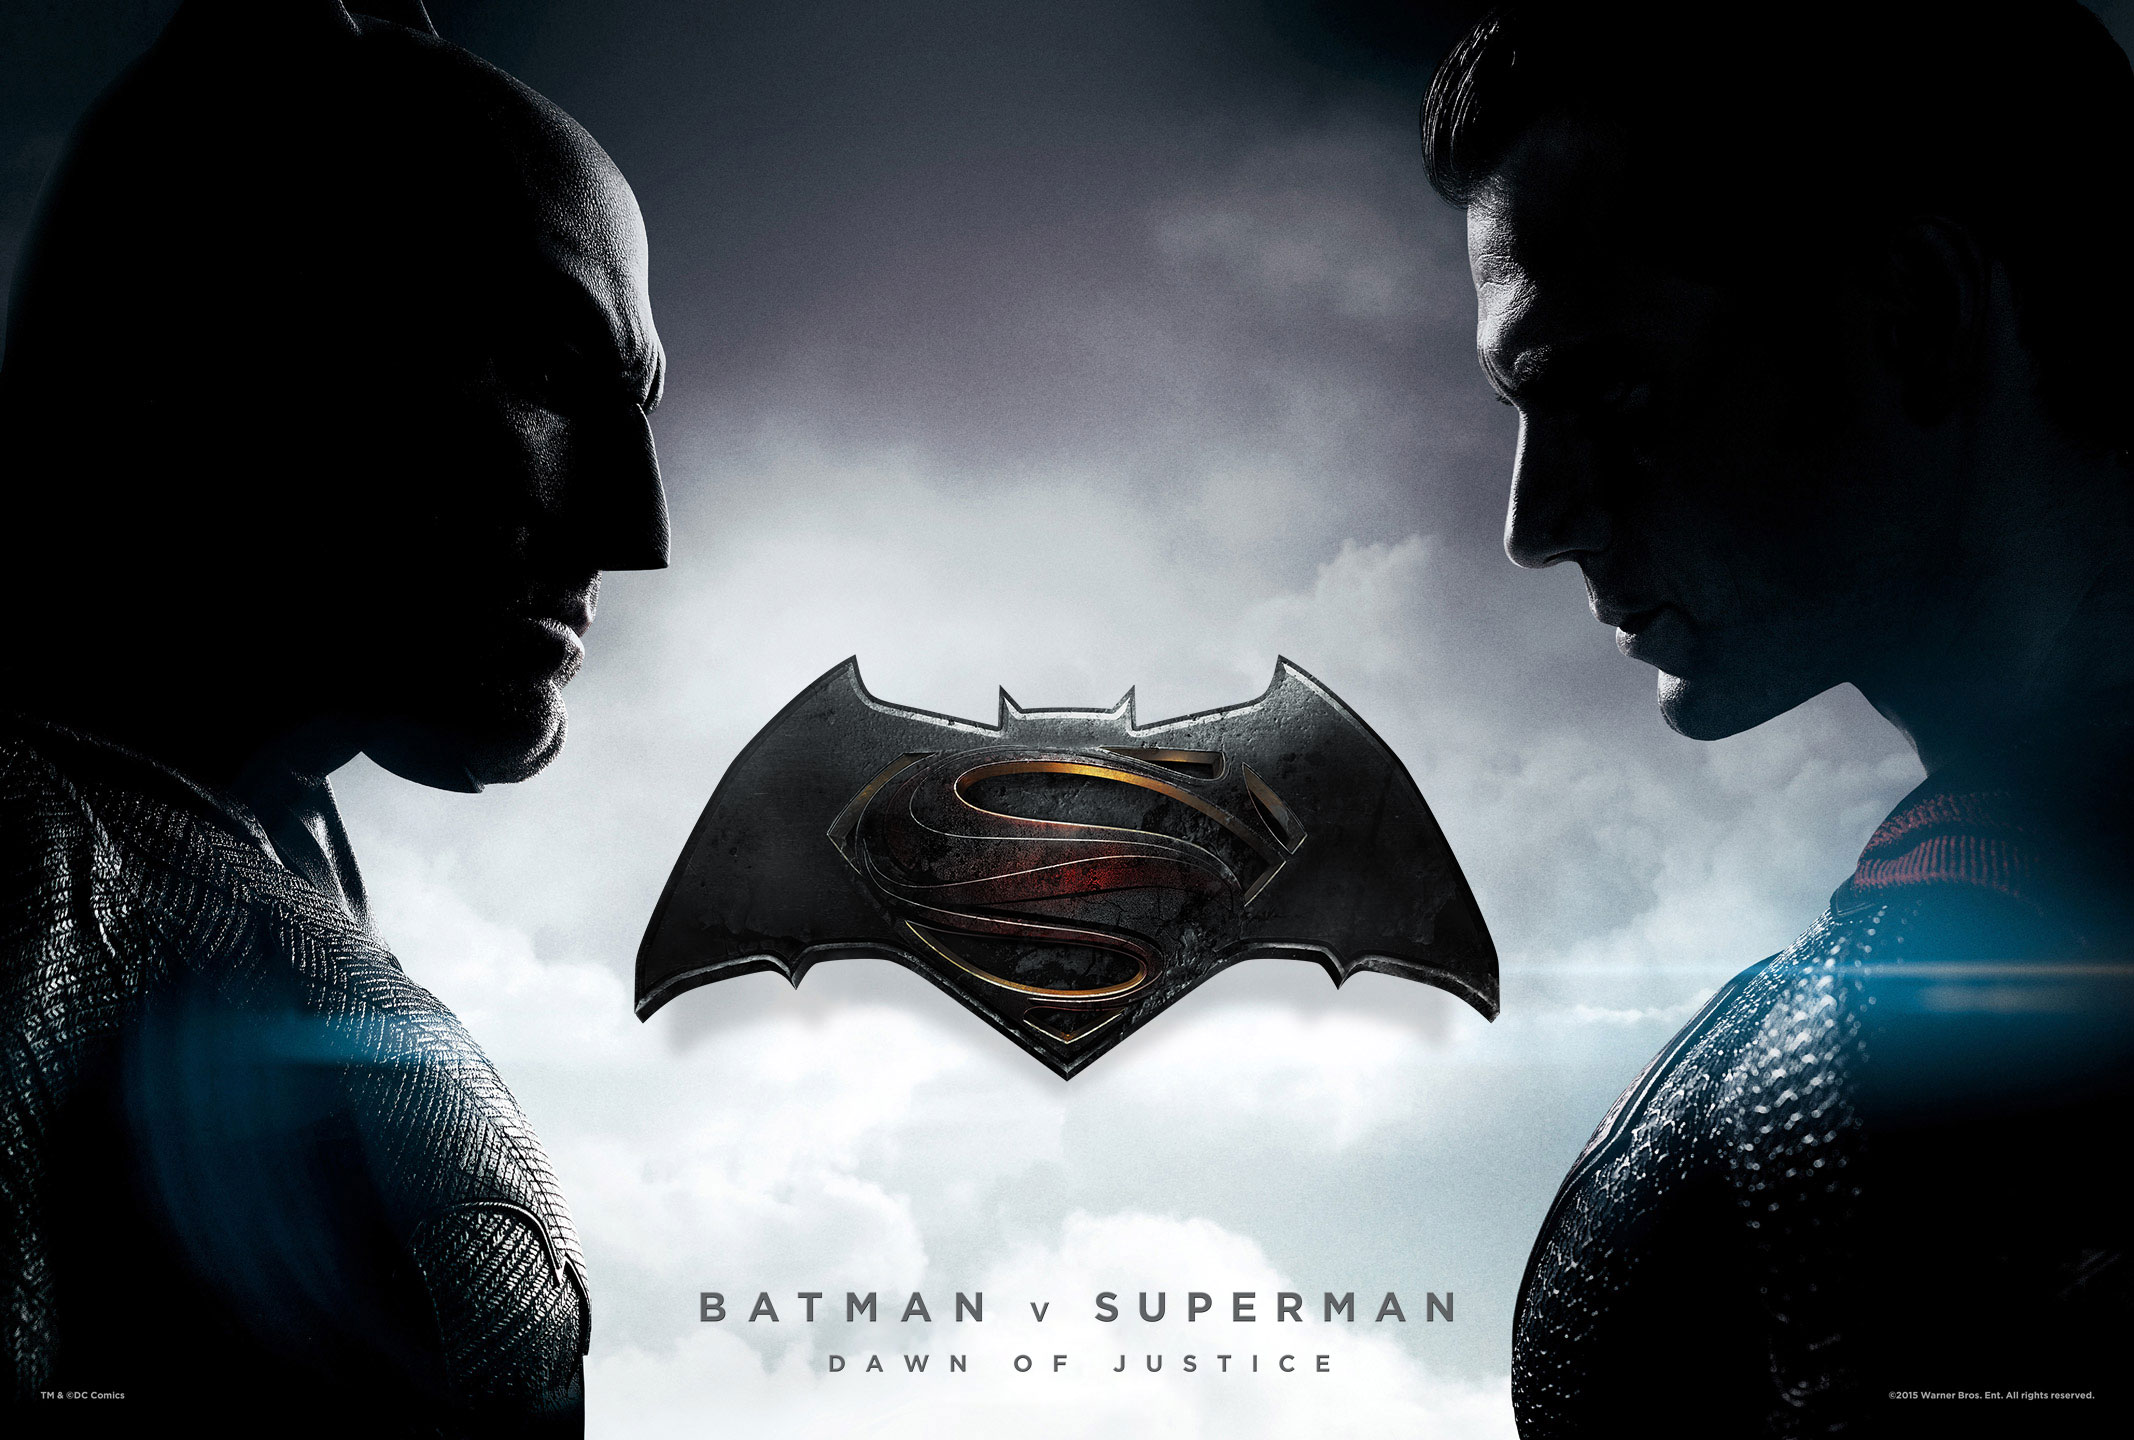 Batman Vs Superman Wallpapers PC P1F3354   4USkY 2134x1440